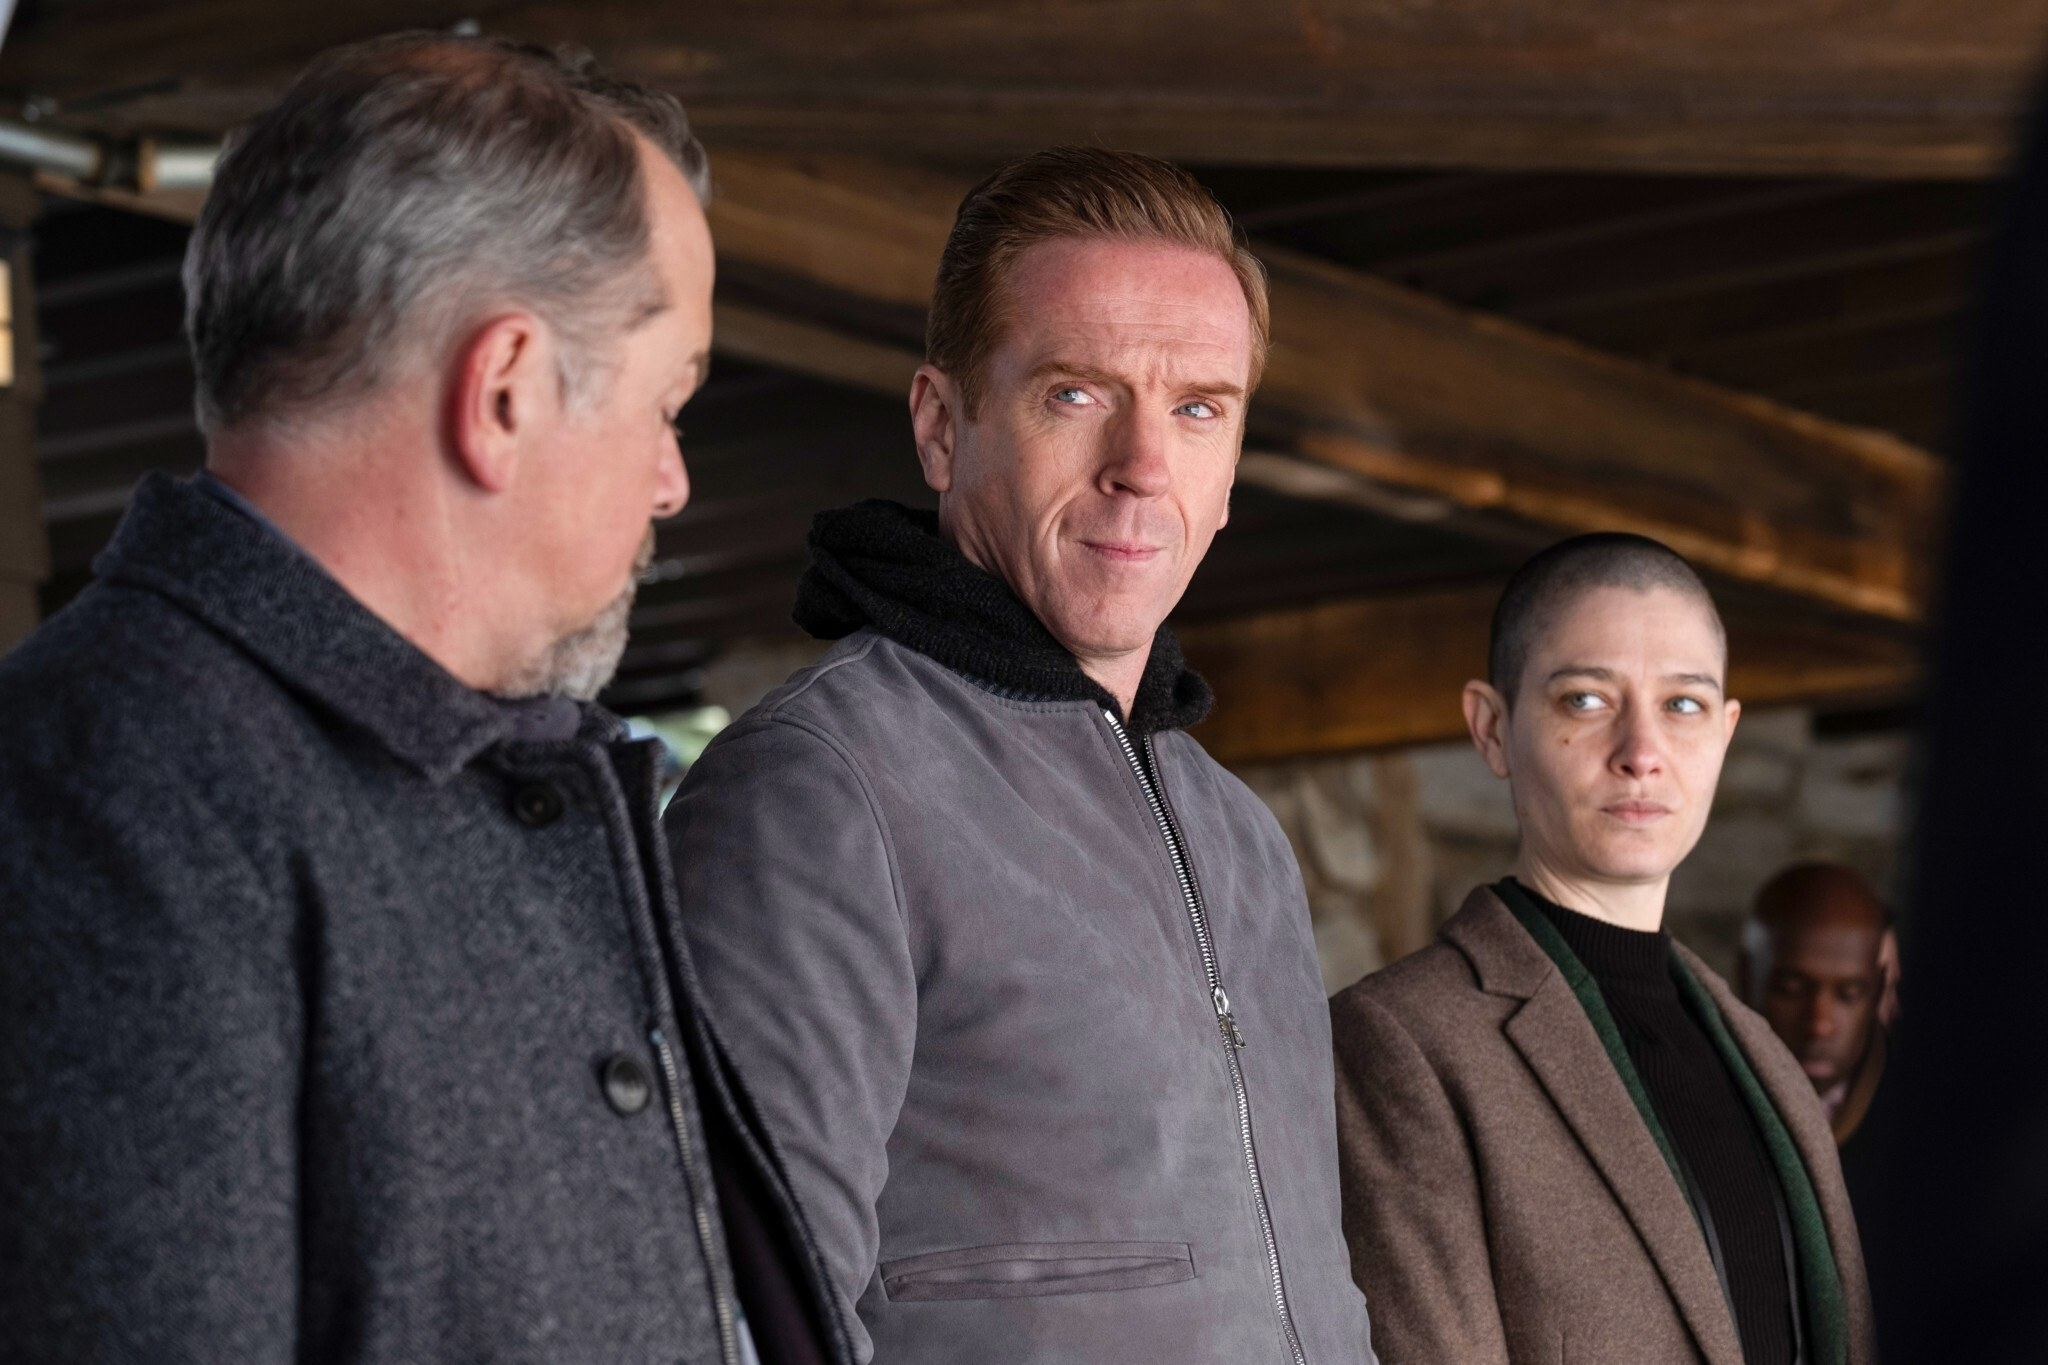 David Costabile, Damian Lewis, and Asia Kate Dillon look into the distance